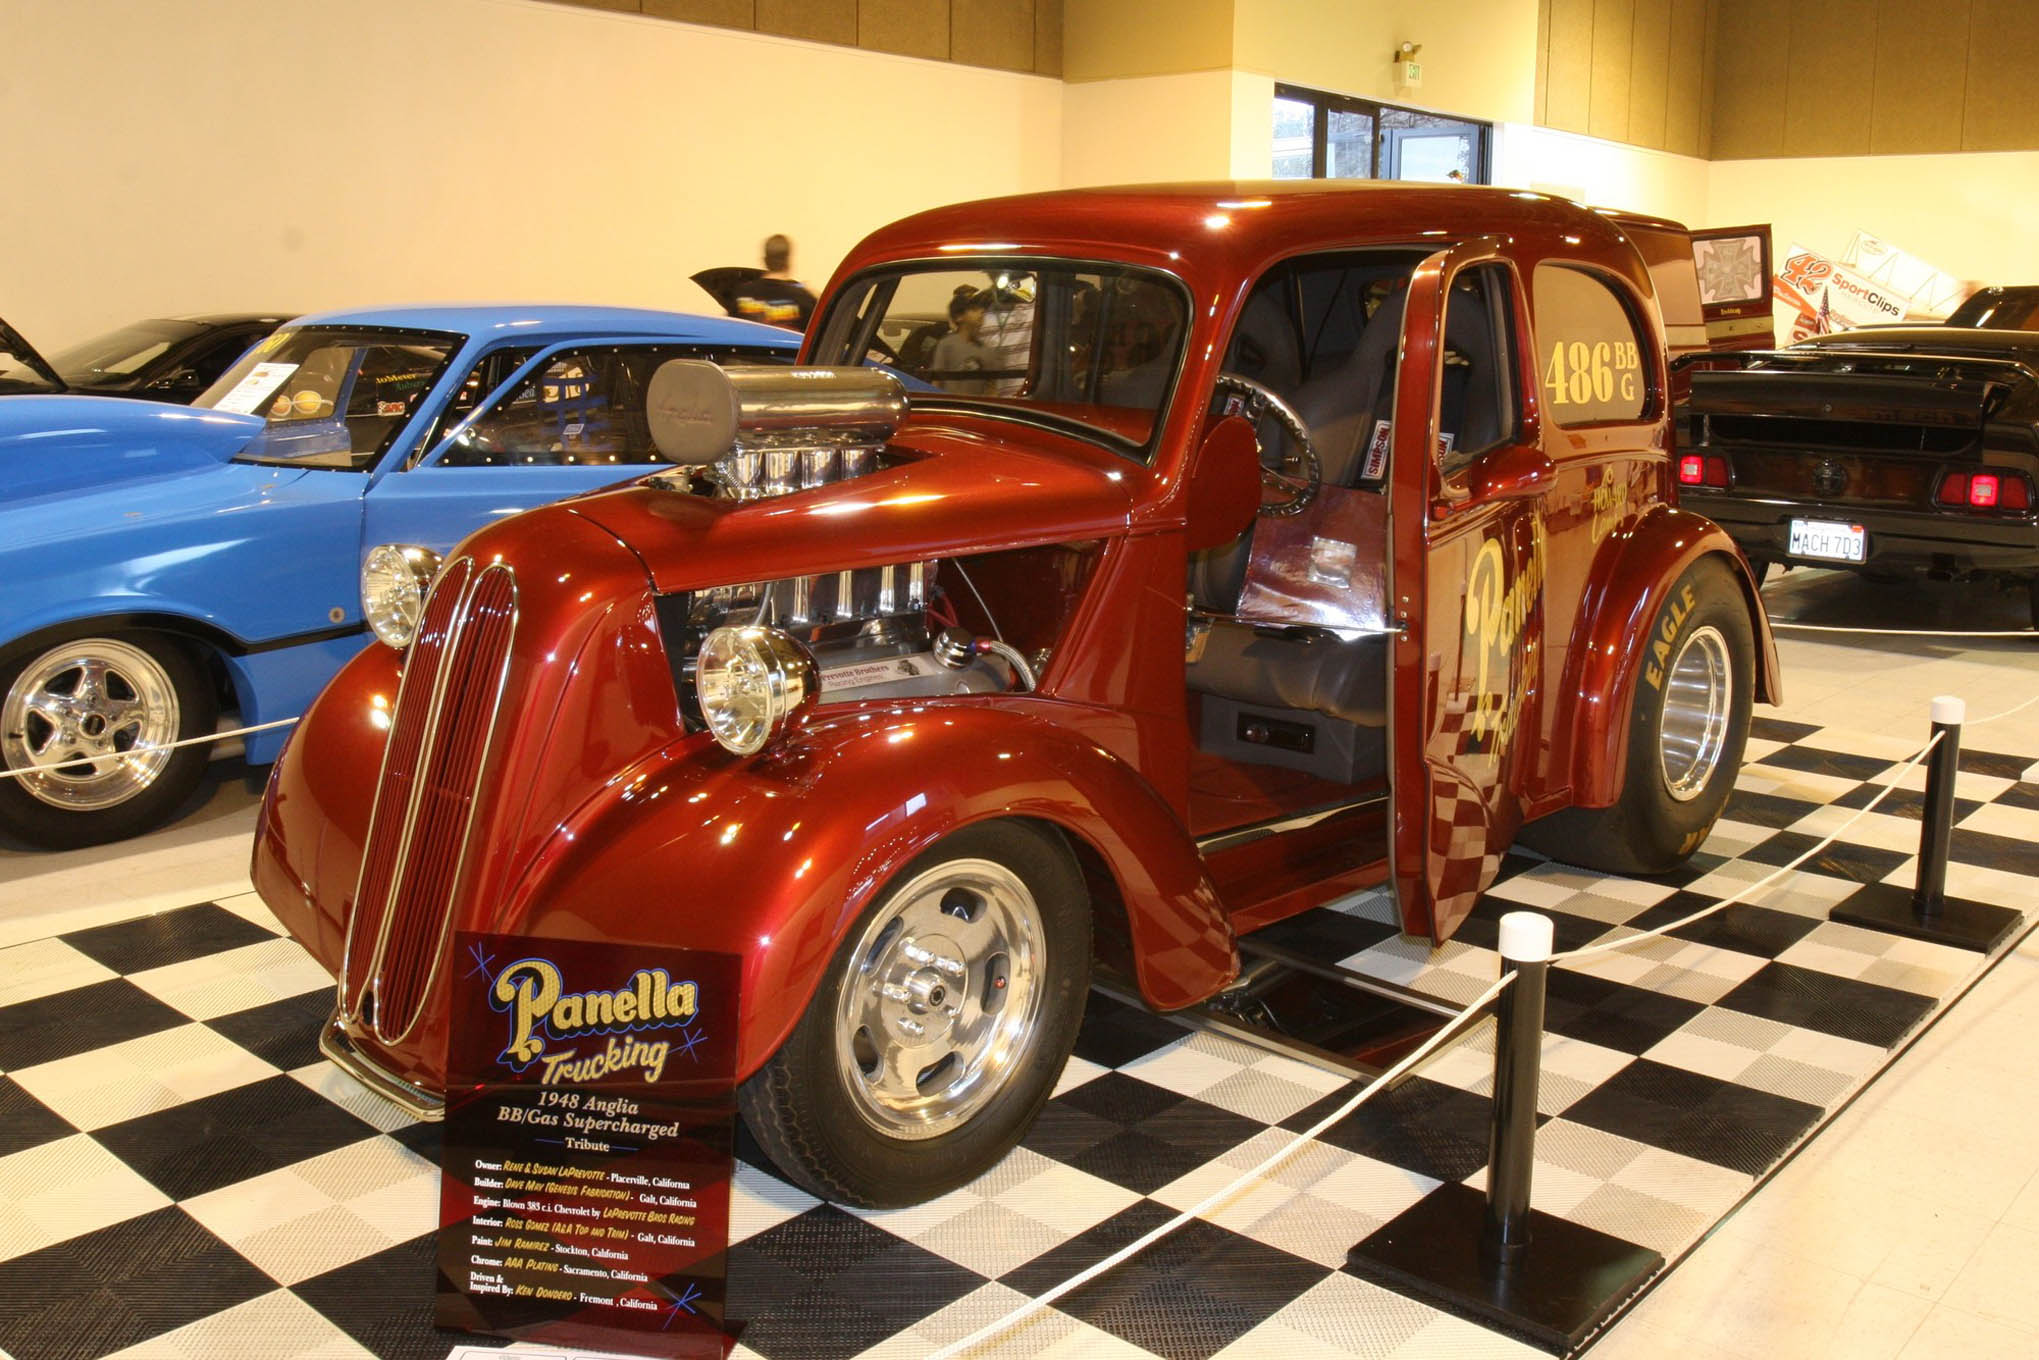 """Rene & Susan Laprevotte wanted their """"Panella Trucking"""" 1948 Ford Anglia Gasser to commemorate the late Ken Dondero, driver of Bob Panella's Gas Supercharged Anglia. Dave May at Genesis Fabrications built the tribute car, which runs a blown Chevy 383."""